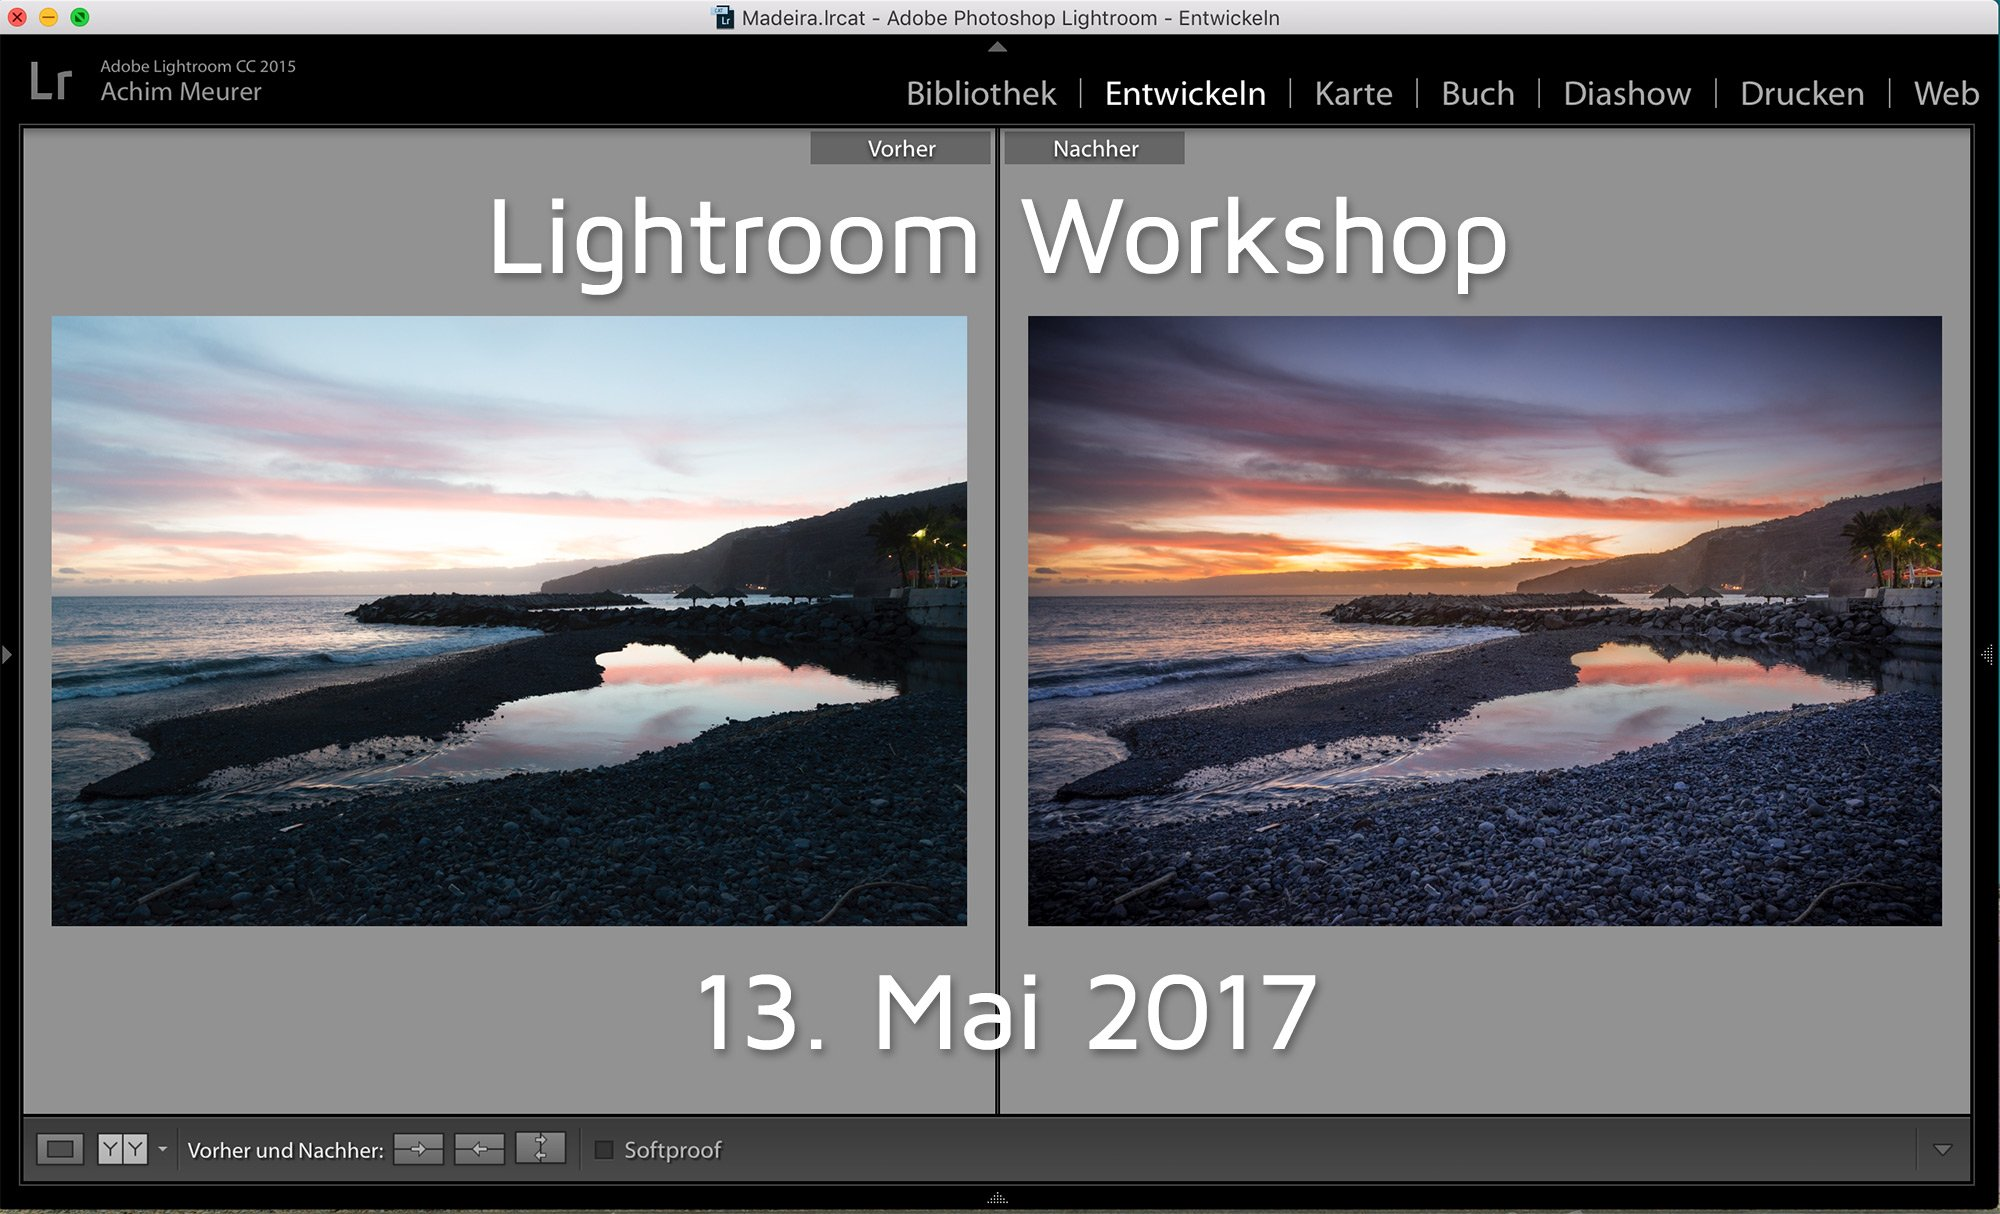 Save the date: Samstag 13.5.2017 der ultimative Lightroom-Workshop inkl. Kochkurs https://t.co/qmuTWHHCuX https://t.co/de8BFEylC2